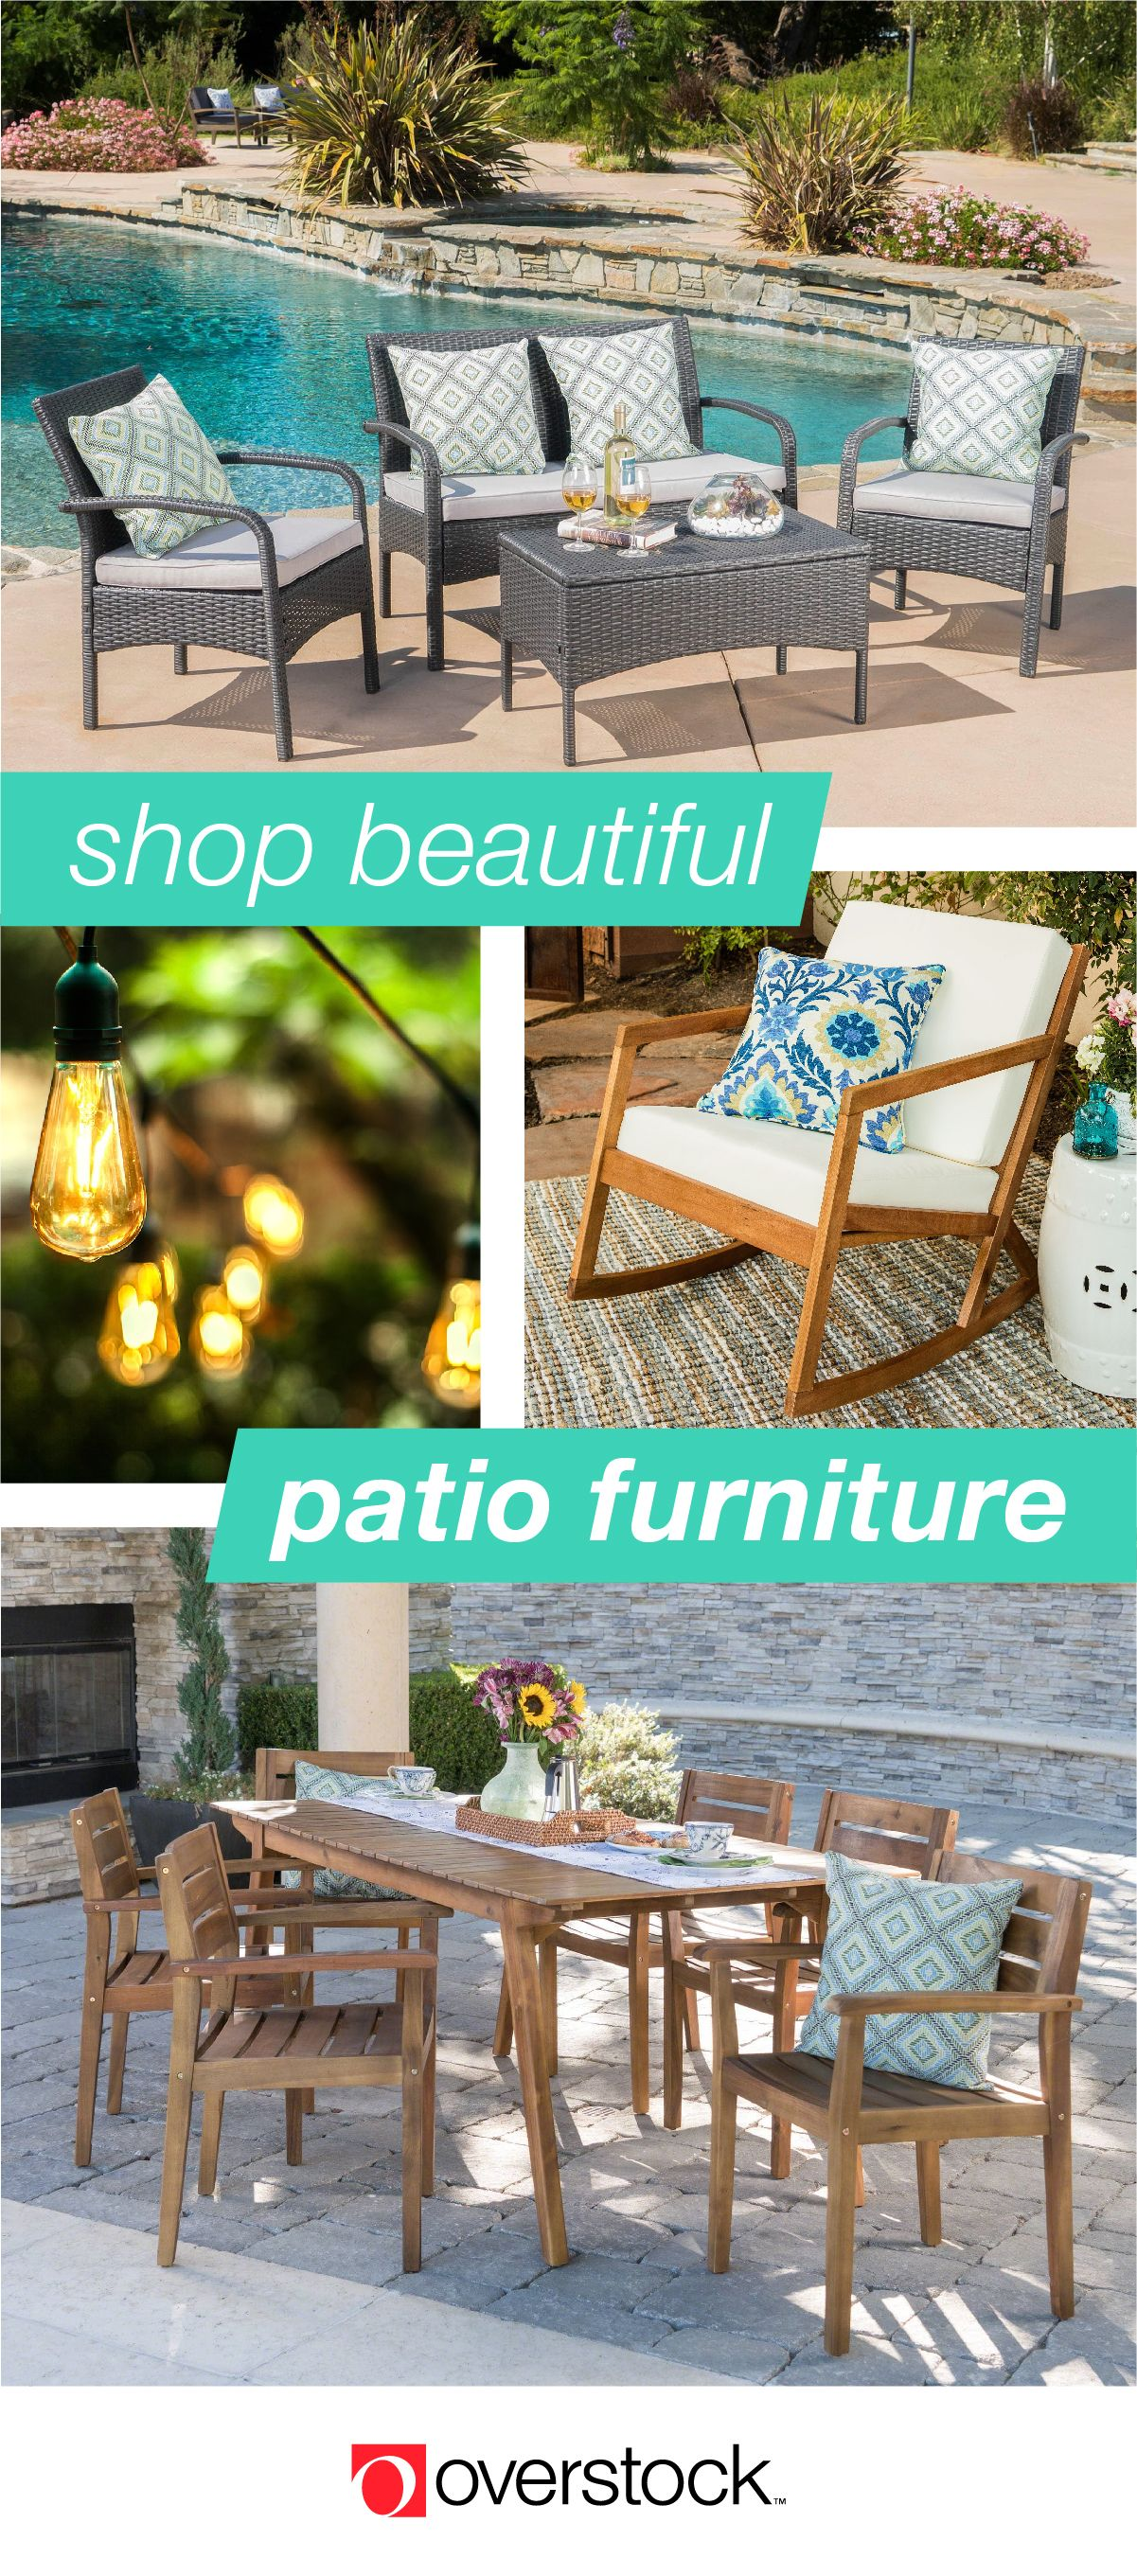 Find Amazing Deals On Stylish Patio Furniture And Decor At Overstock